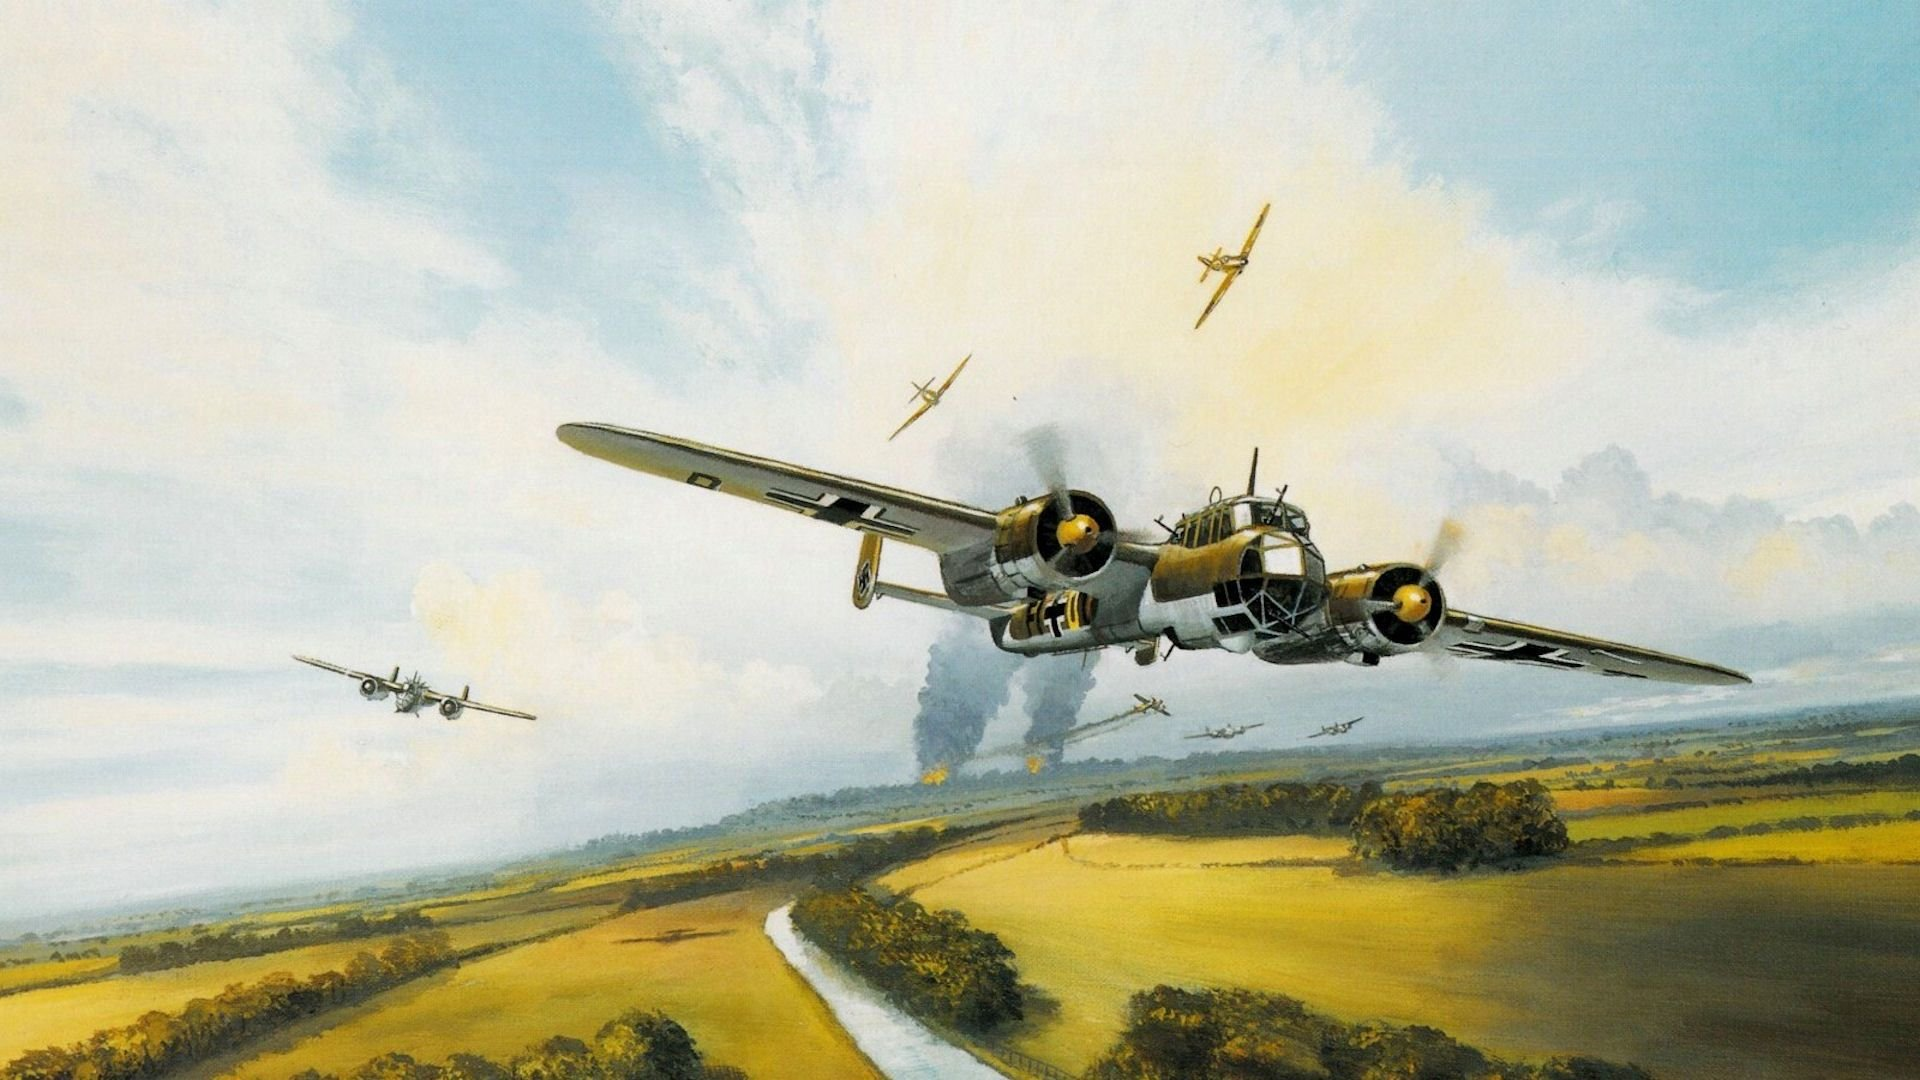 Battle Wallpapers Aircraft Games Video Plane Planes - Battle Of Britain -  1920x1080 Wallpaper - teahub.io